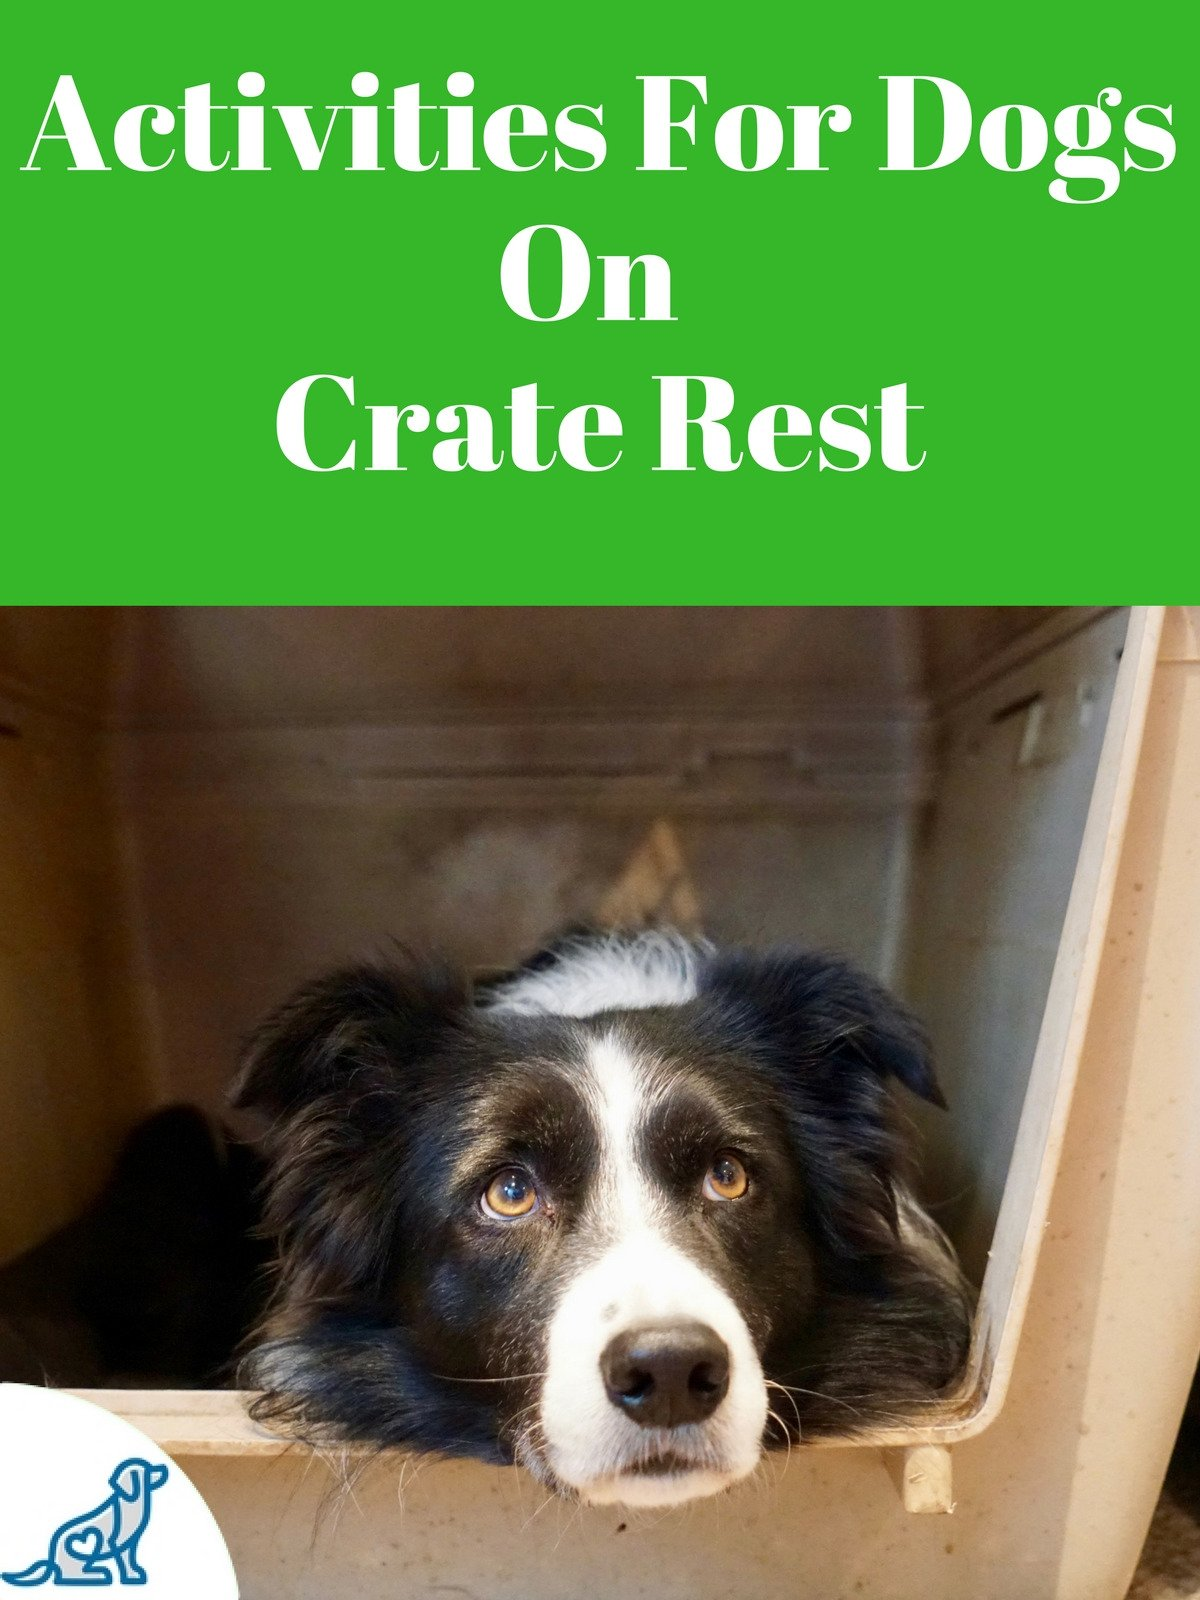 Activities For Dogs On Crate Rest